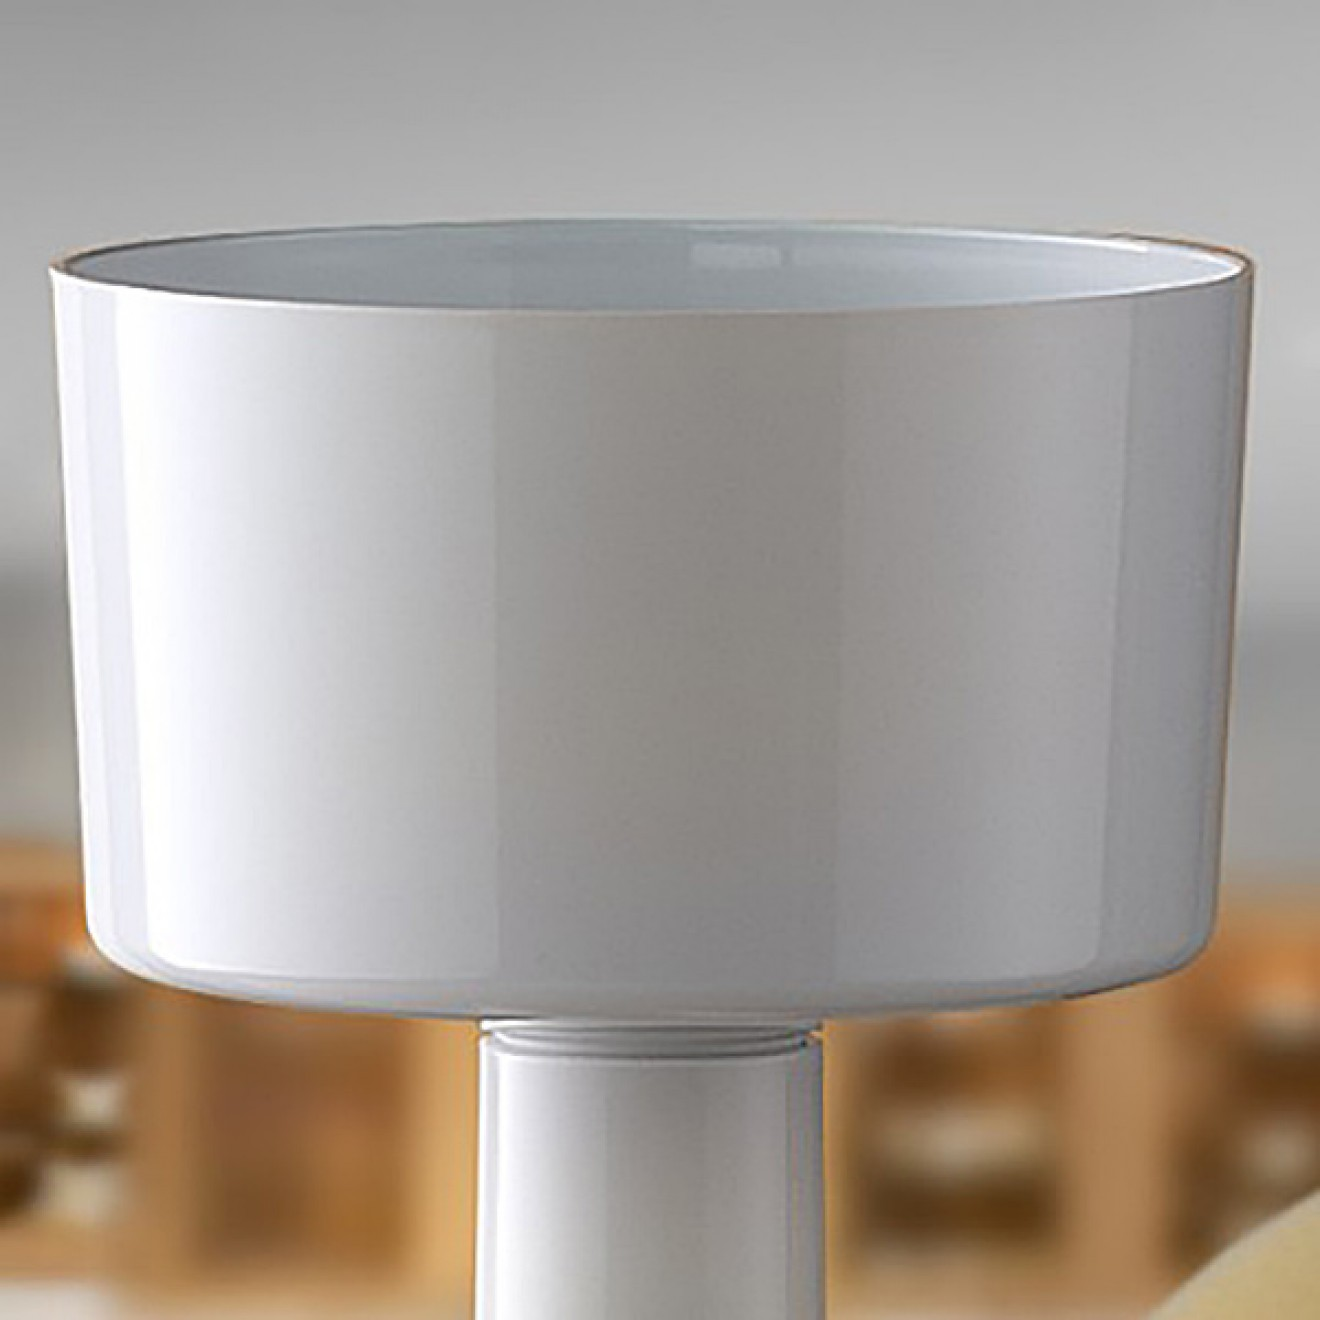 Funnel for Grain Mill incl. shipping costs